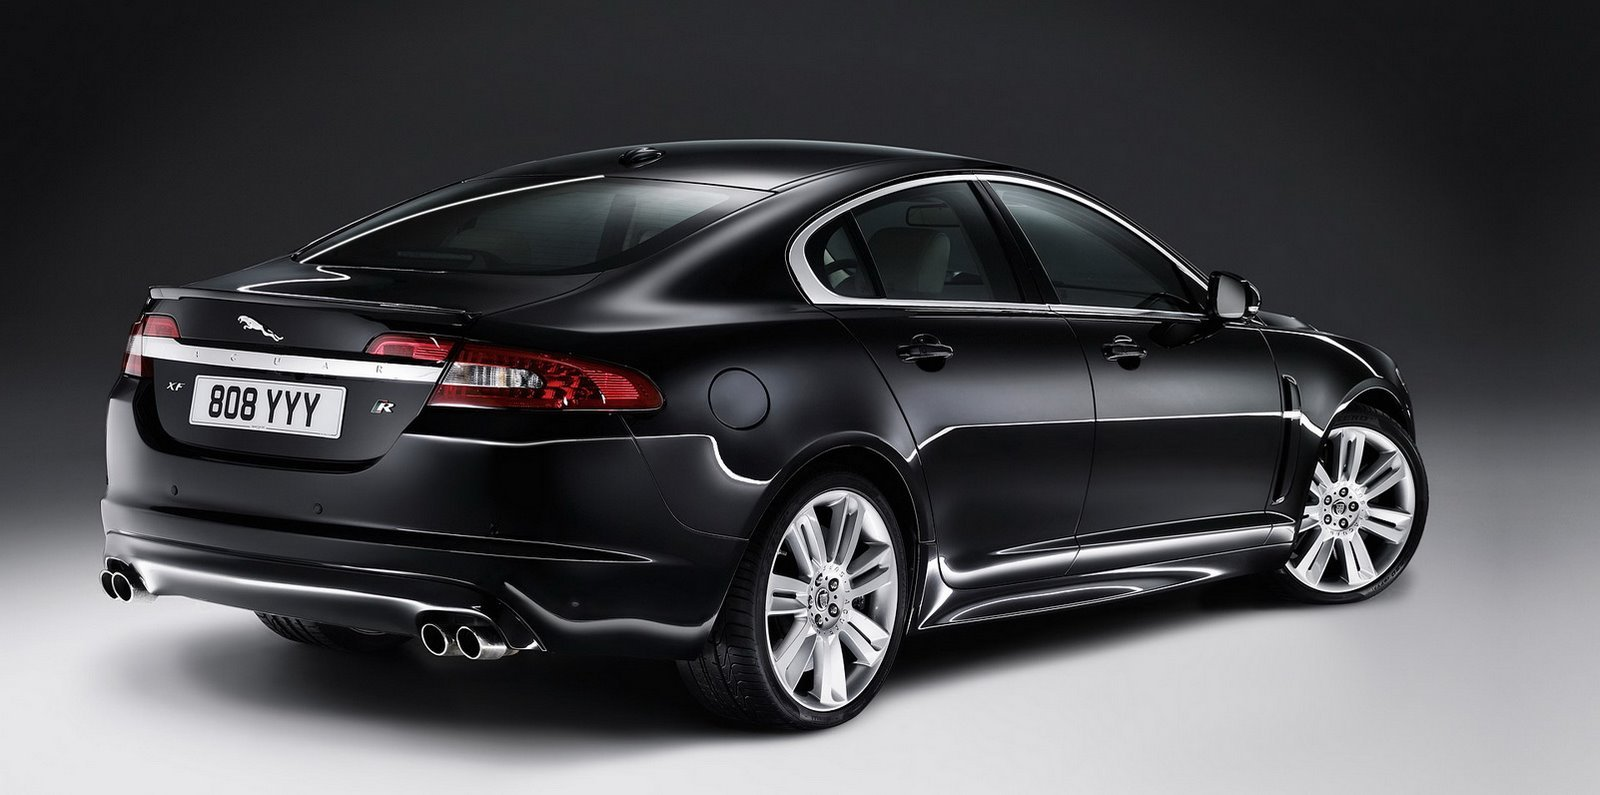 jaguar XFR Price 510 hp 5 0 liter supercharged jaguar Free Download Image Of Wallpaper